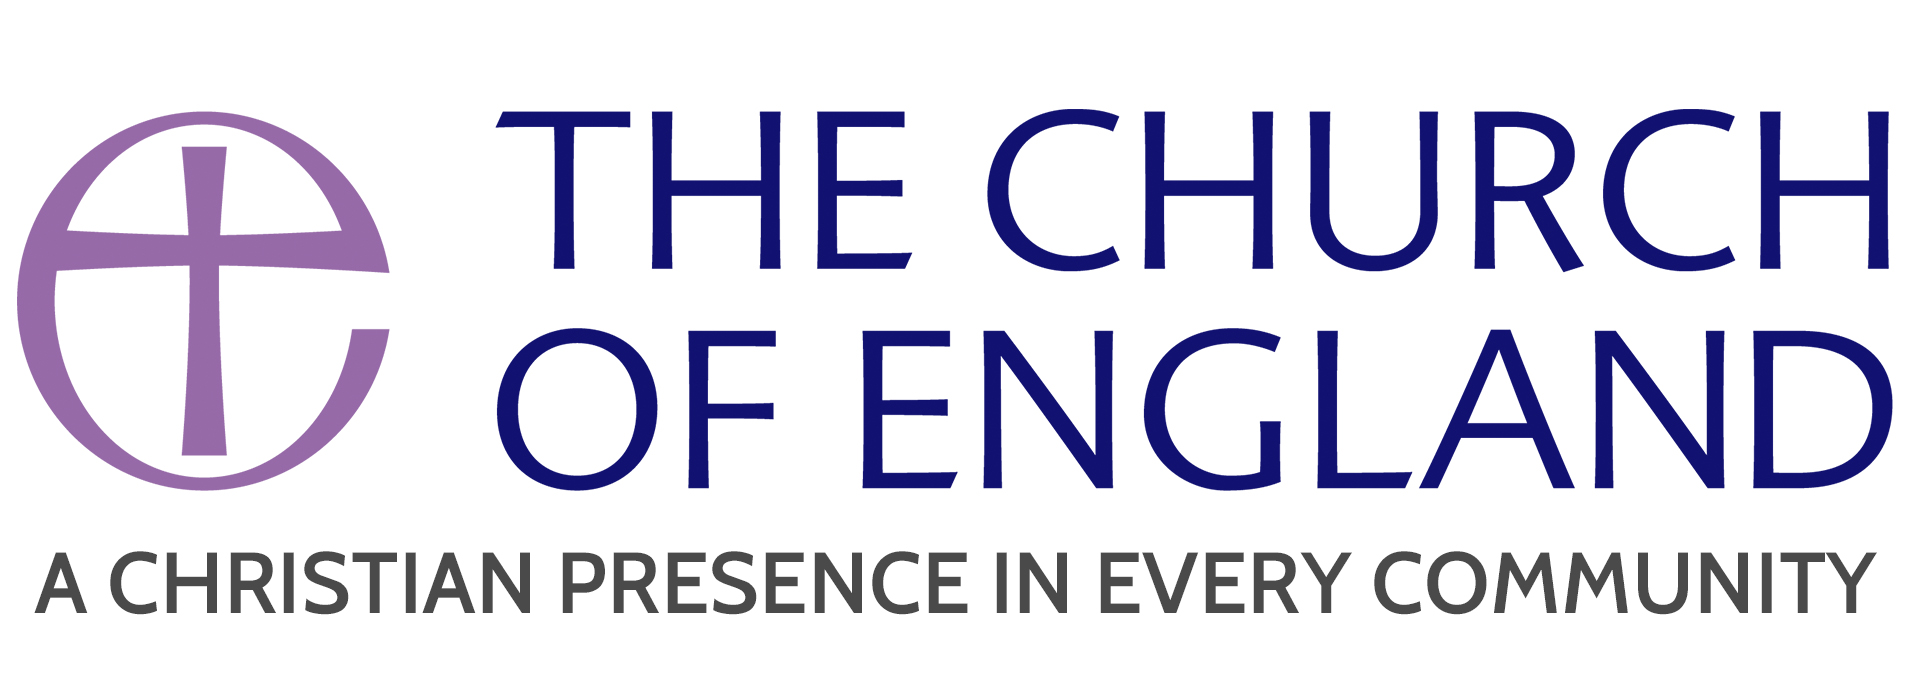 The Church of England - a Christian presence in every community.